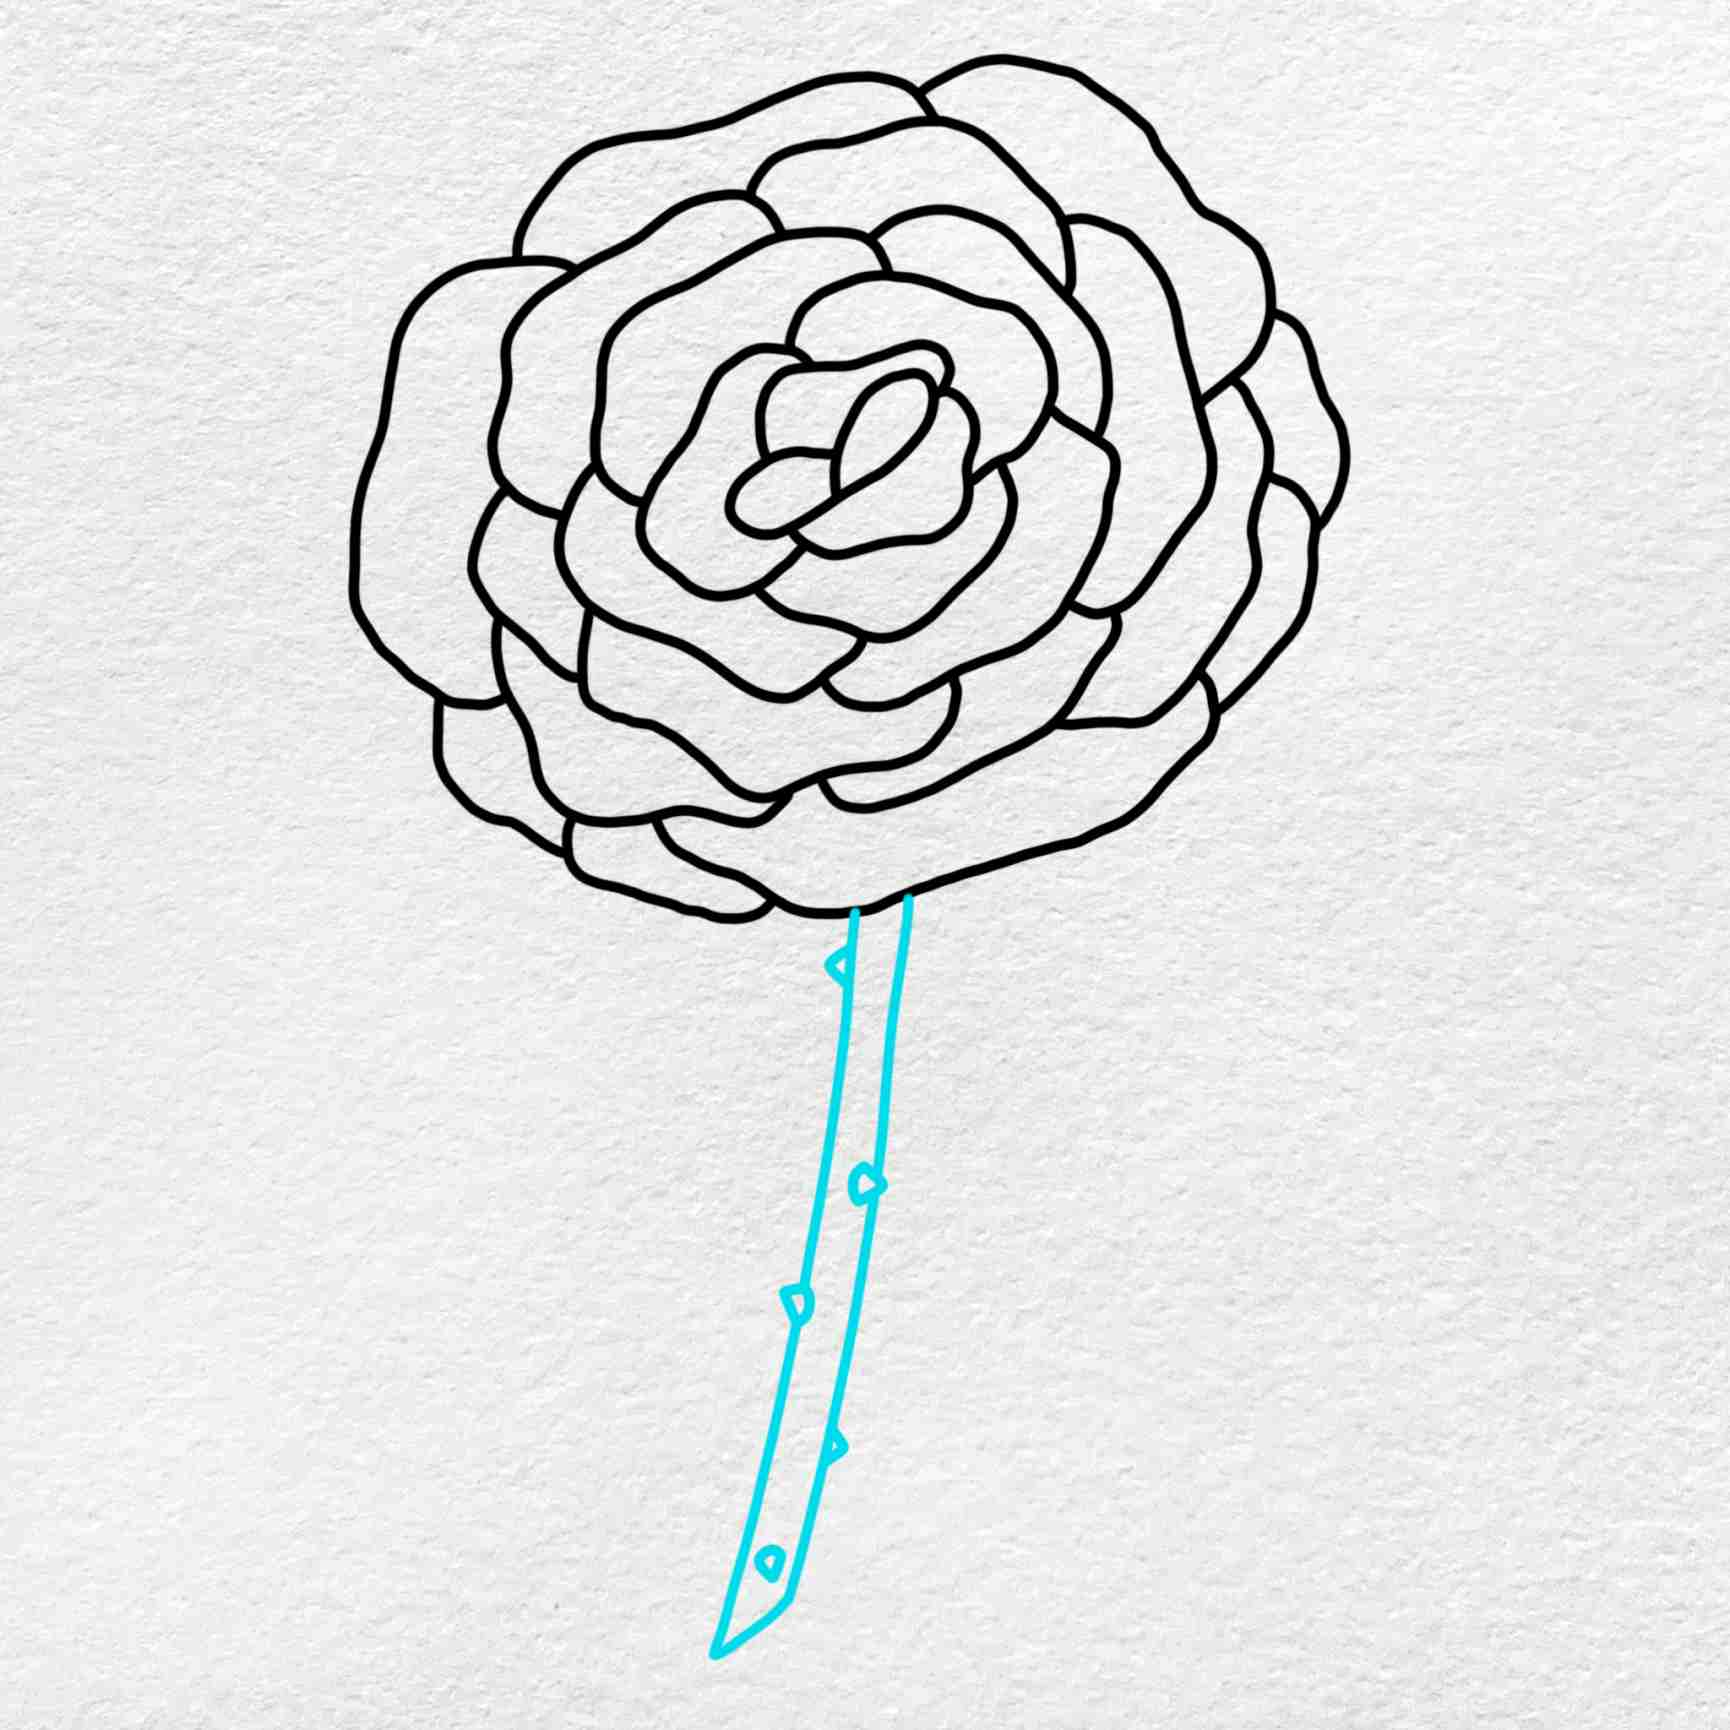 How To Draw A Rose Step By Step: Step 4